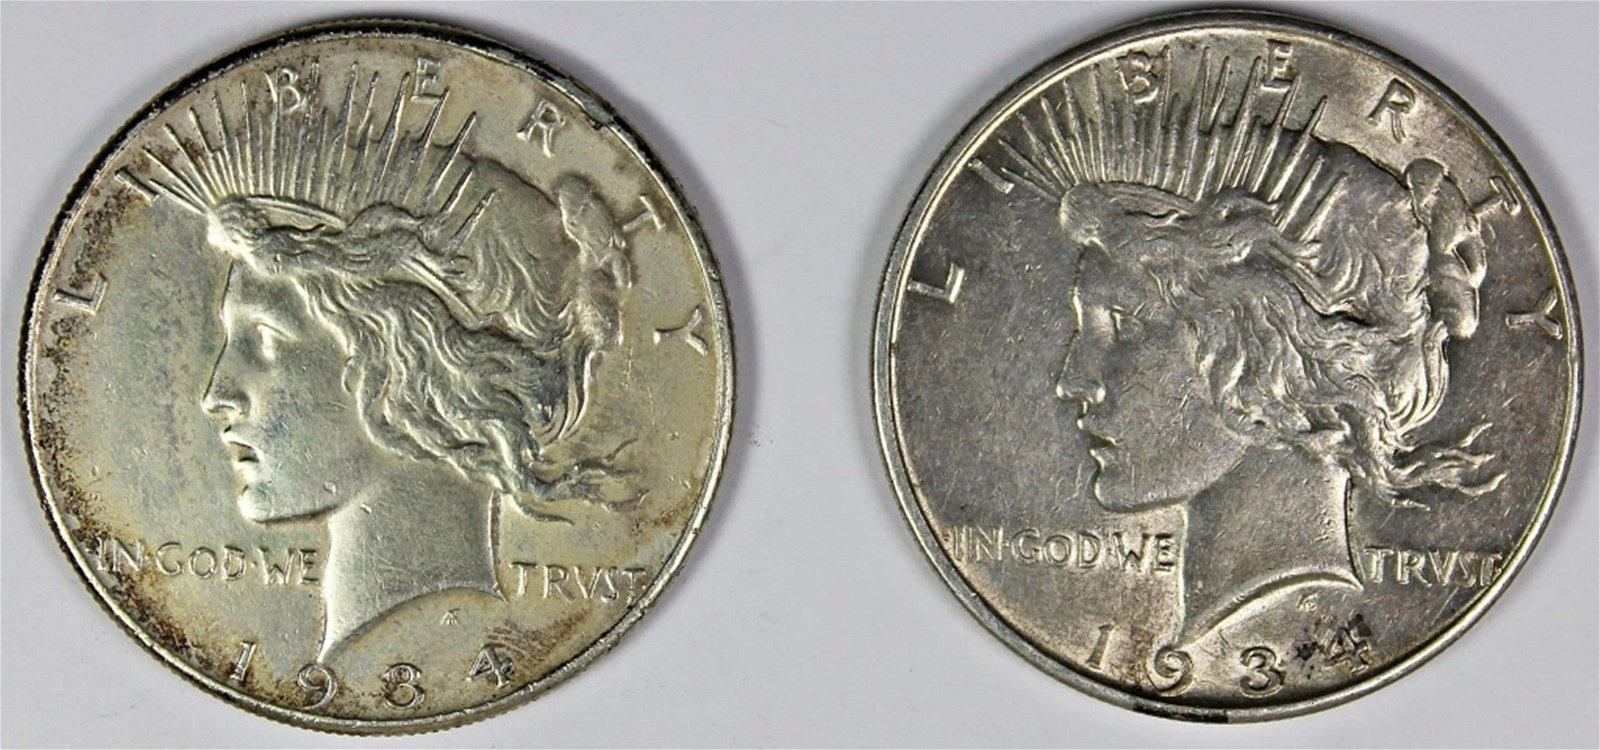 TWO PEACE DOLLARS: